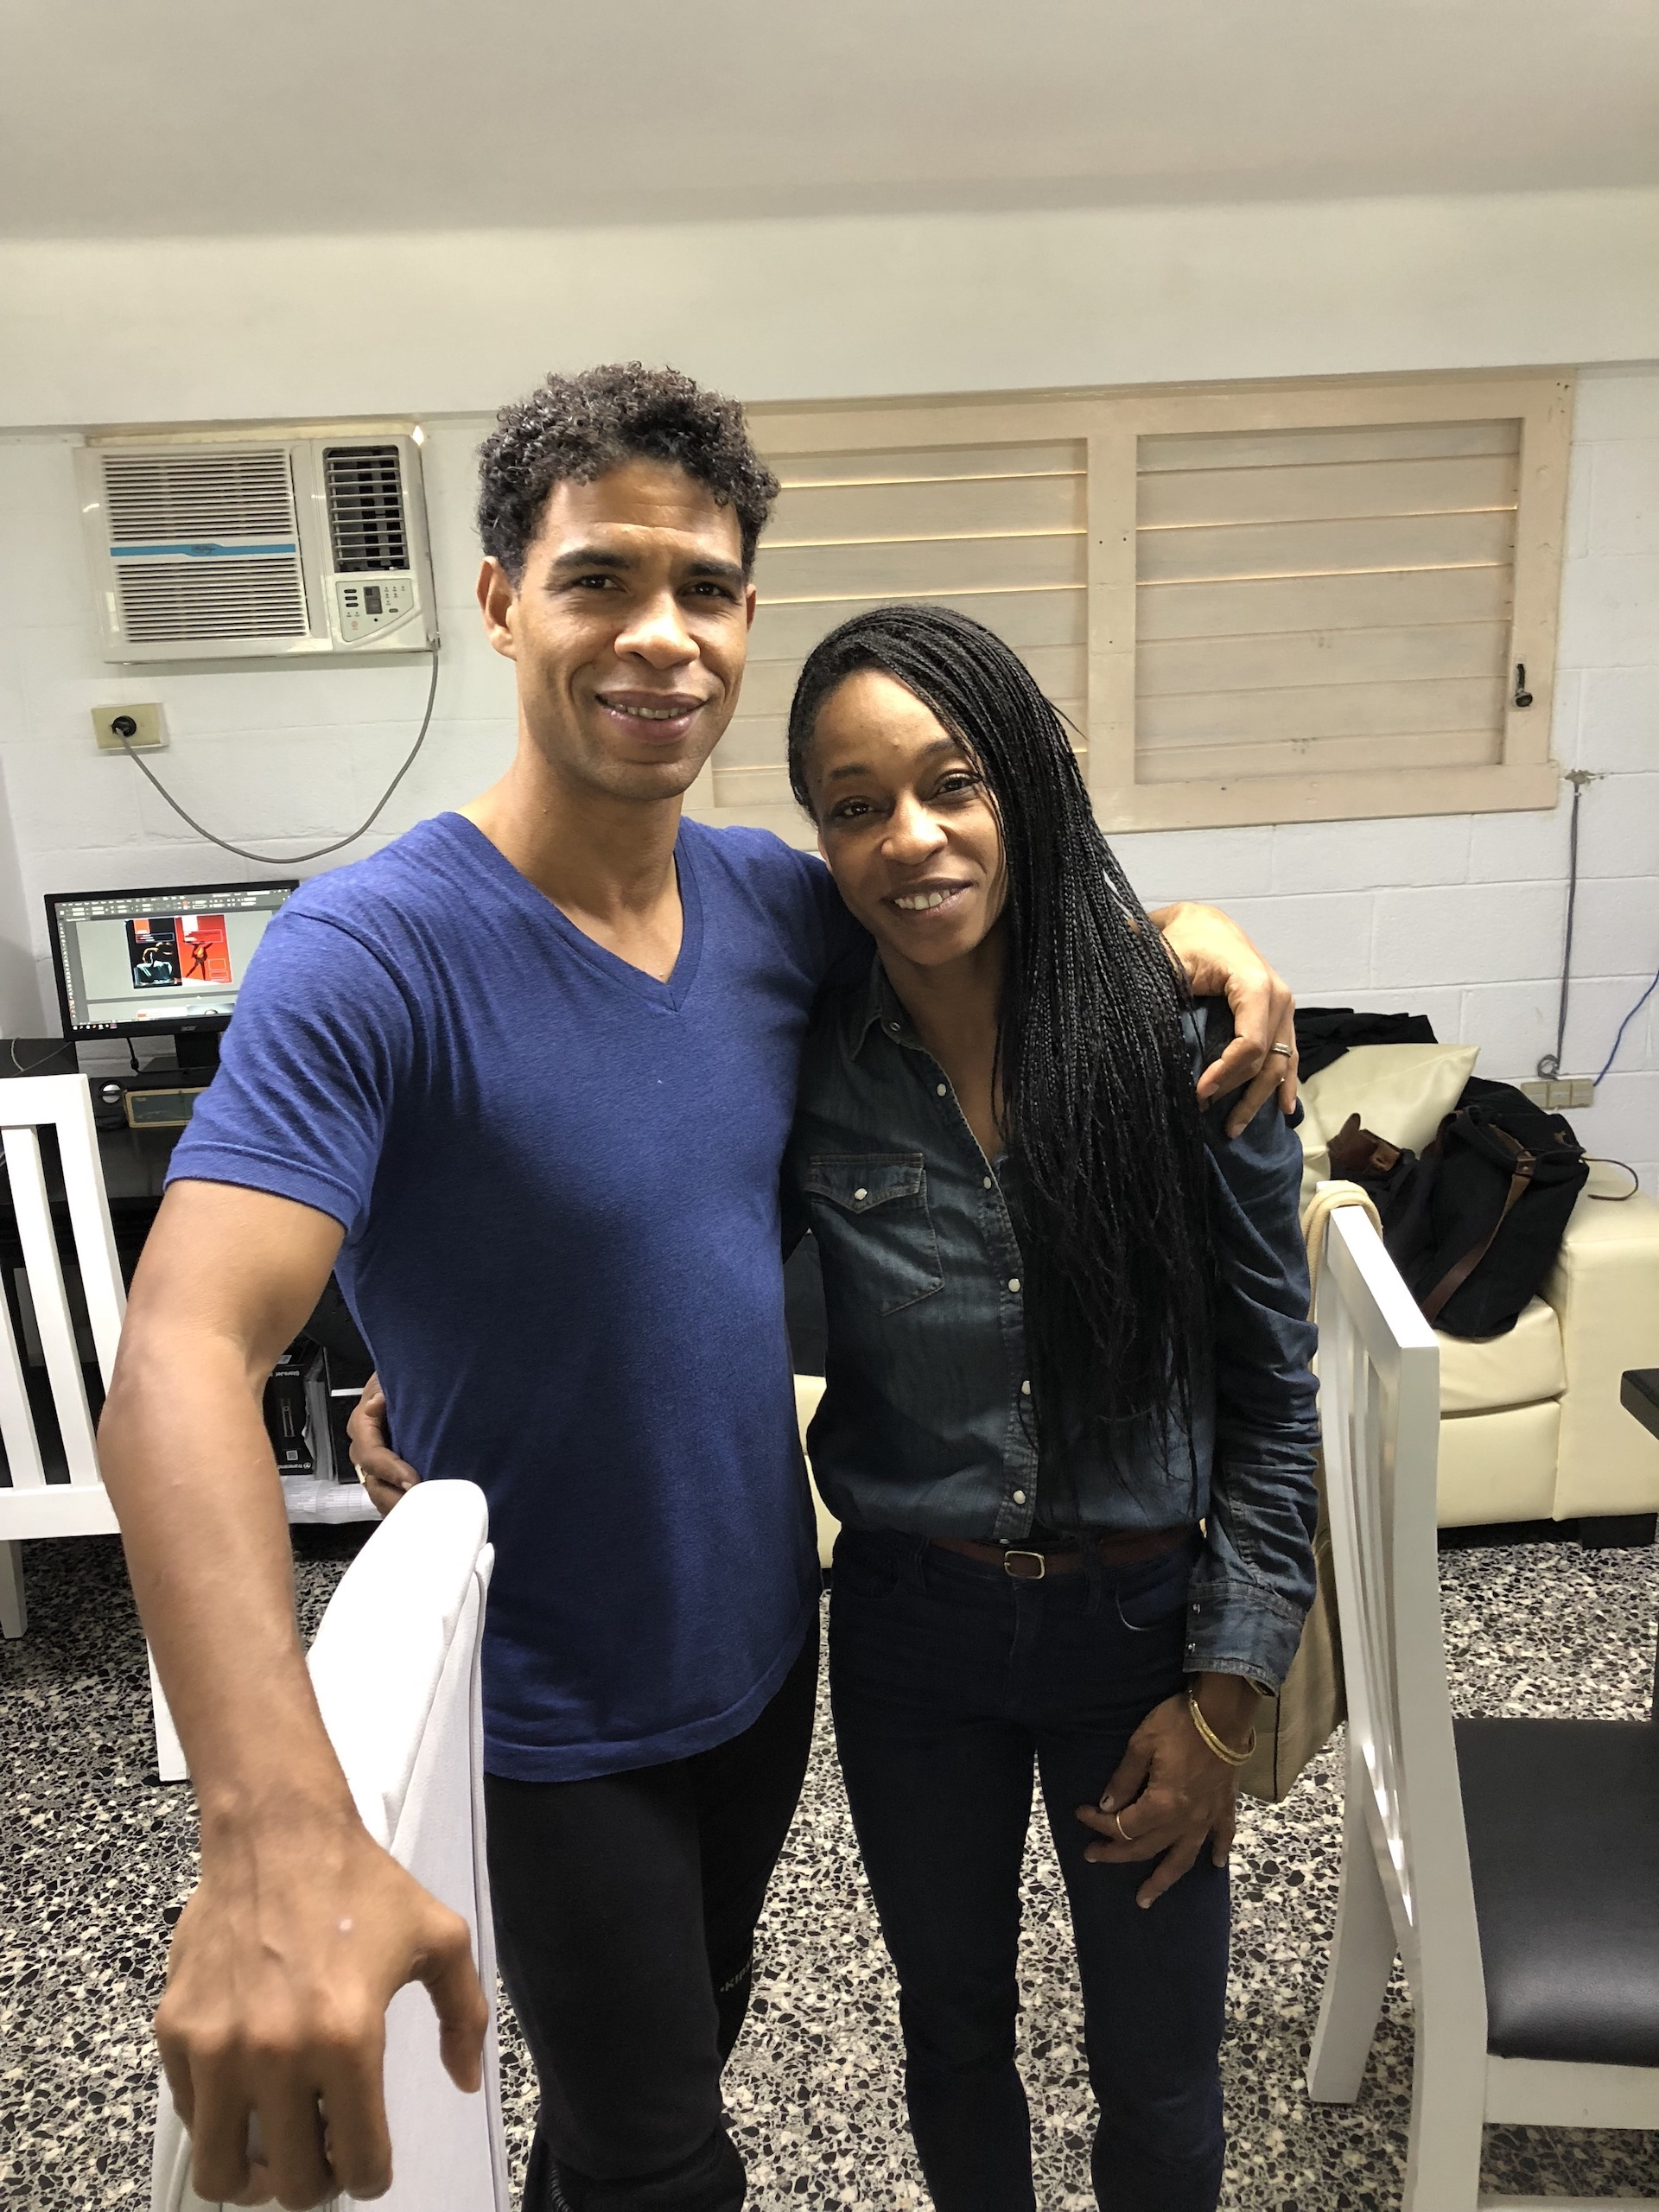 Carlos Acosta and Djassi DaCosta Johnson